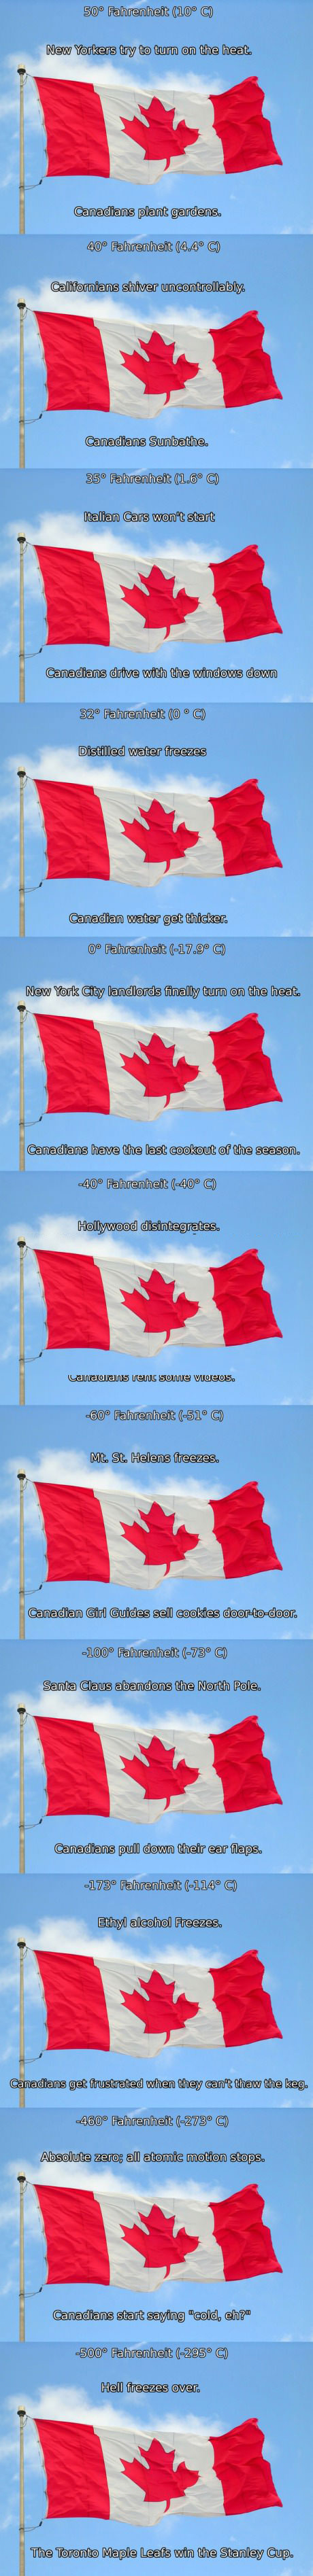 facts-about-canada